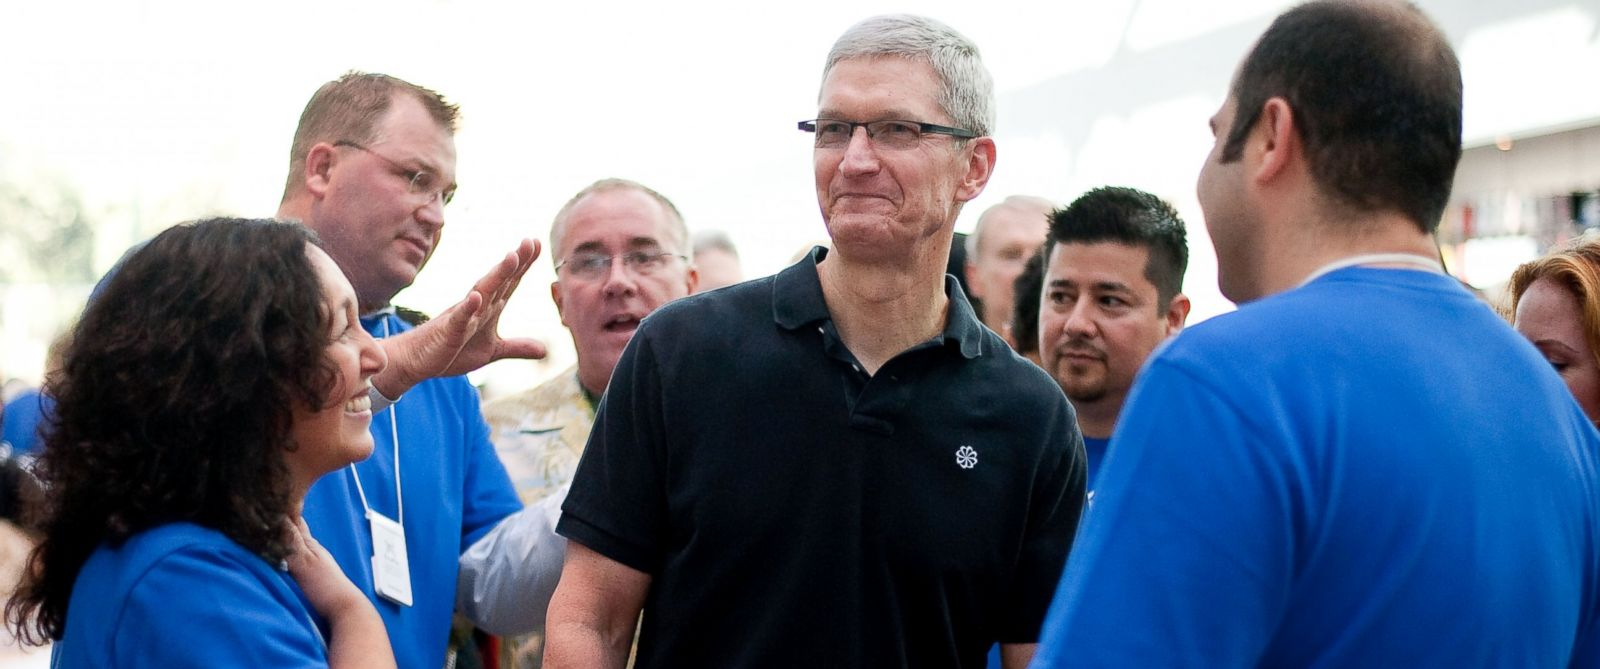 Apple came into open conflict with Donald trump